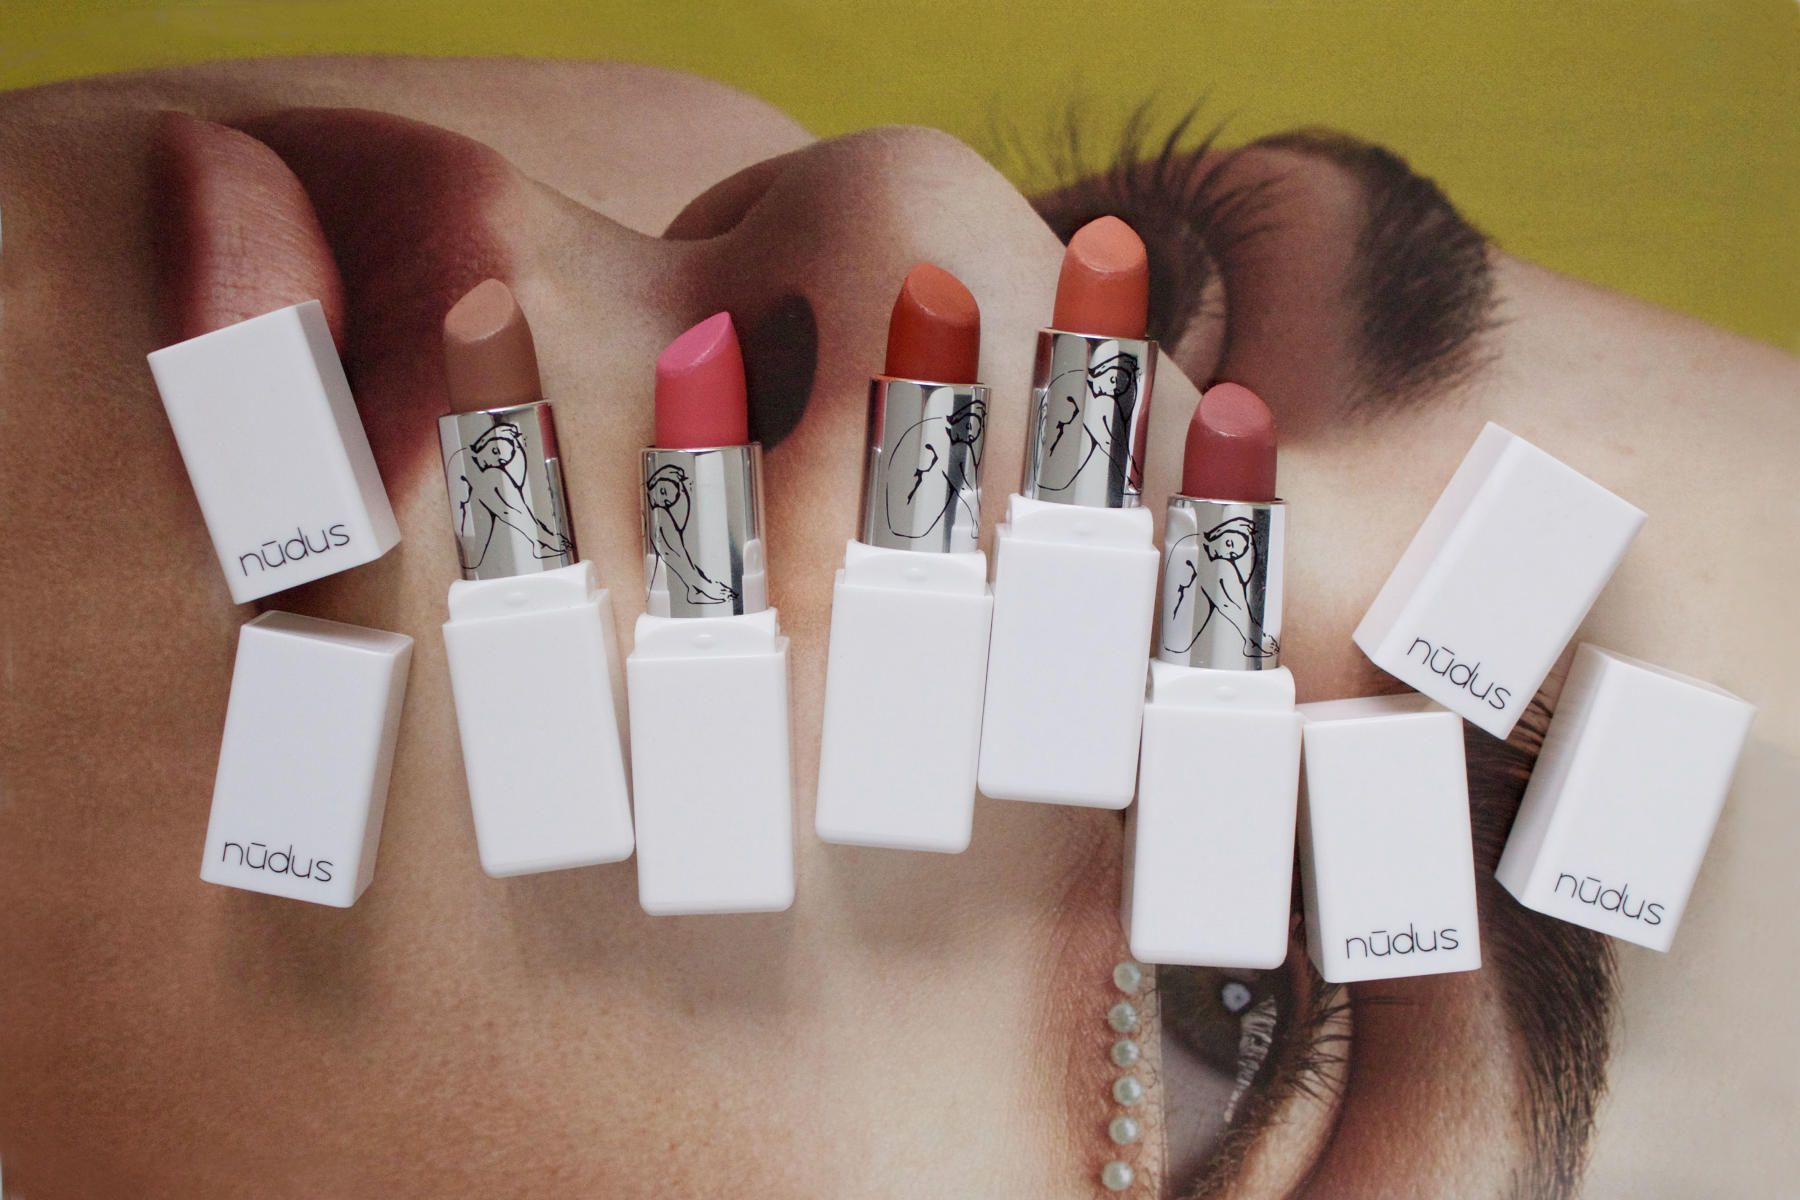 Ogee Luxury Organics: All-Natural Makeup and Skincare